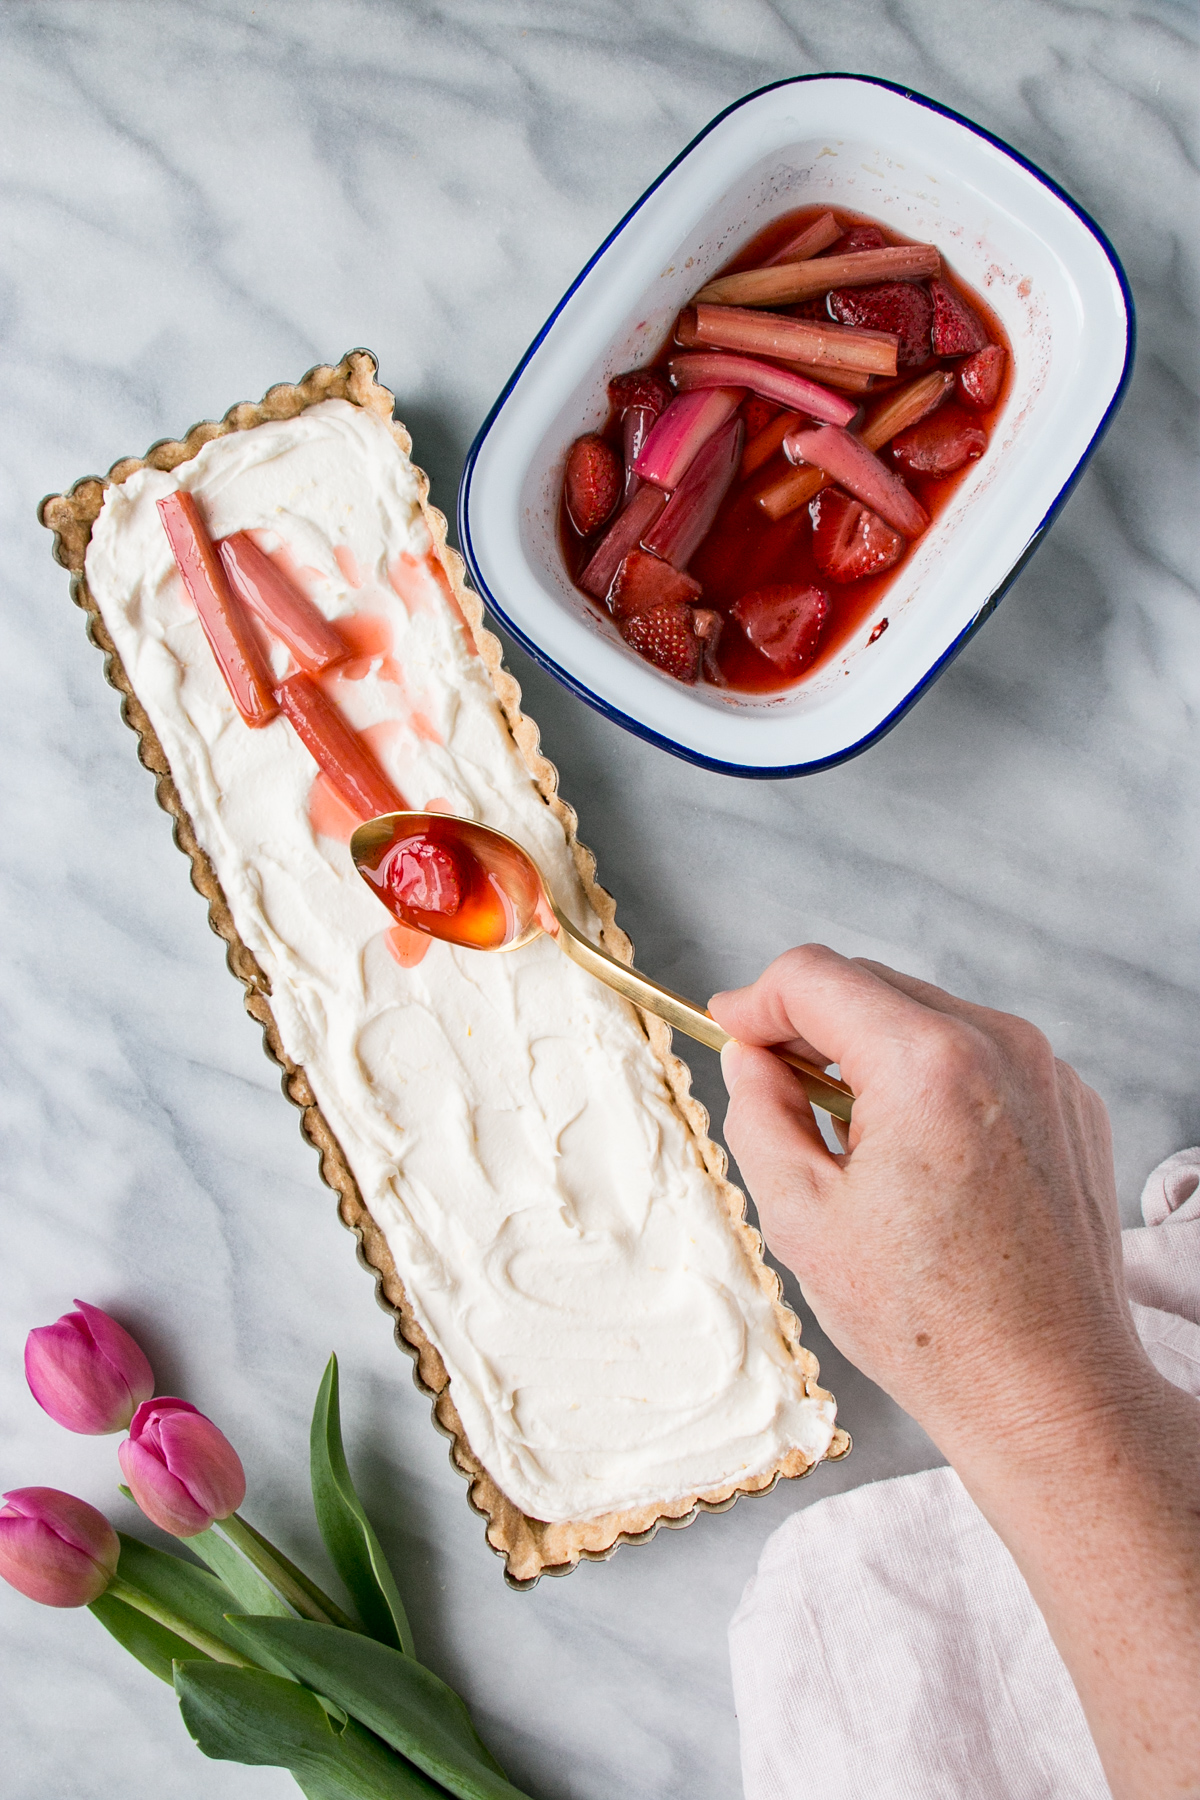 a person spooning a strawberry rhubarb mixture over a white (lemon) tart.